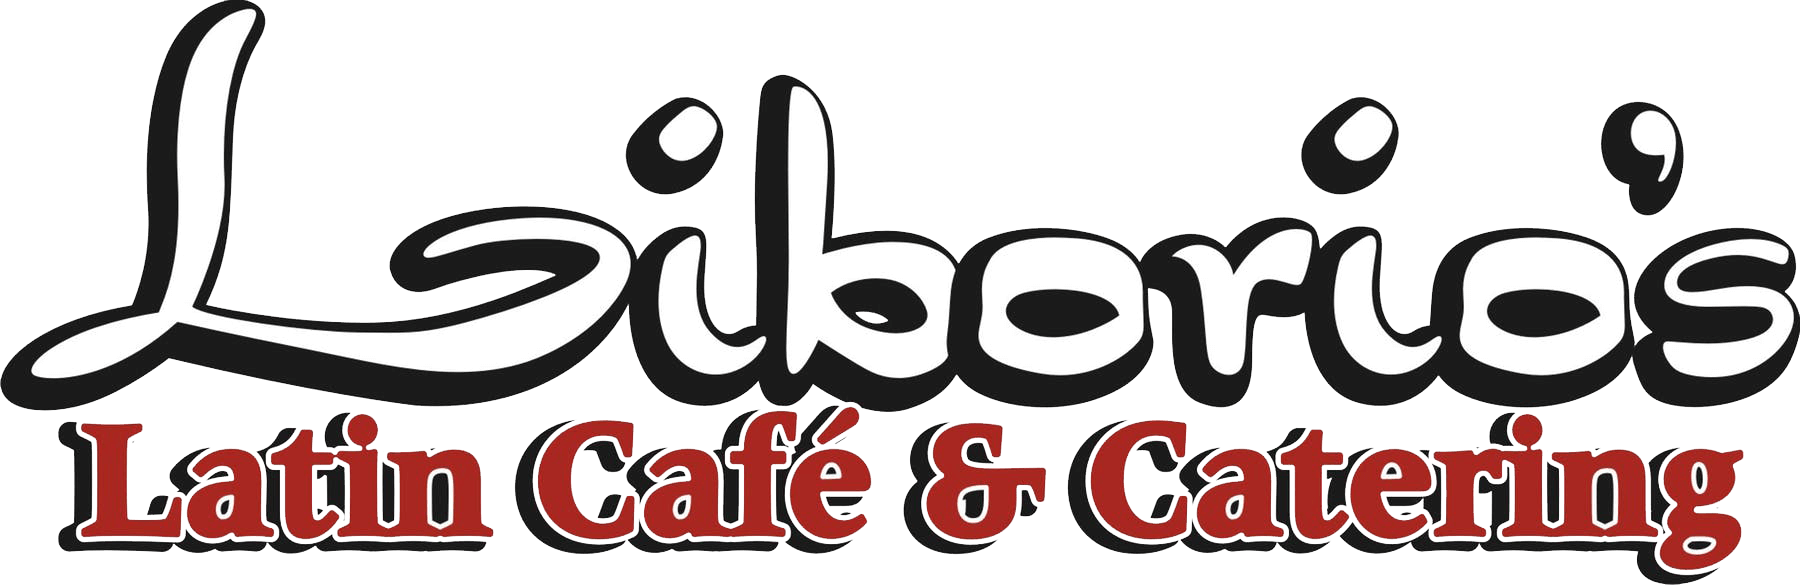 Liborio's Latin Cafe & Catering